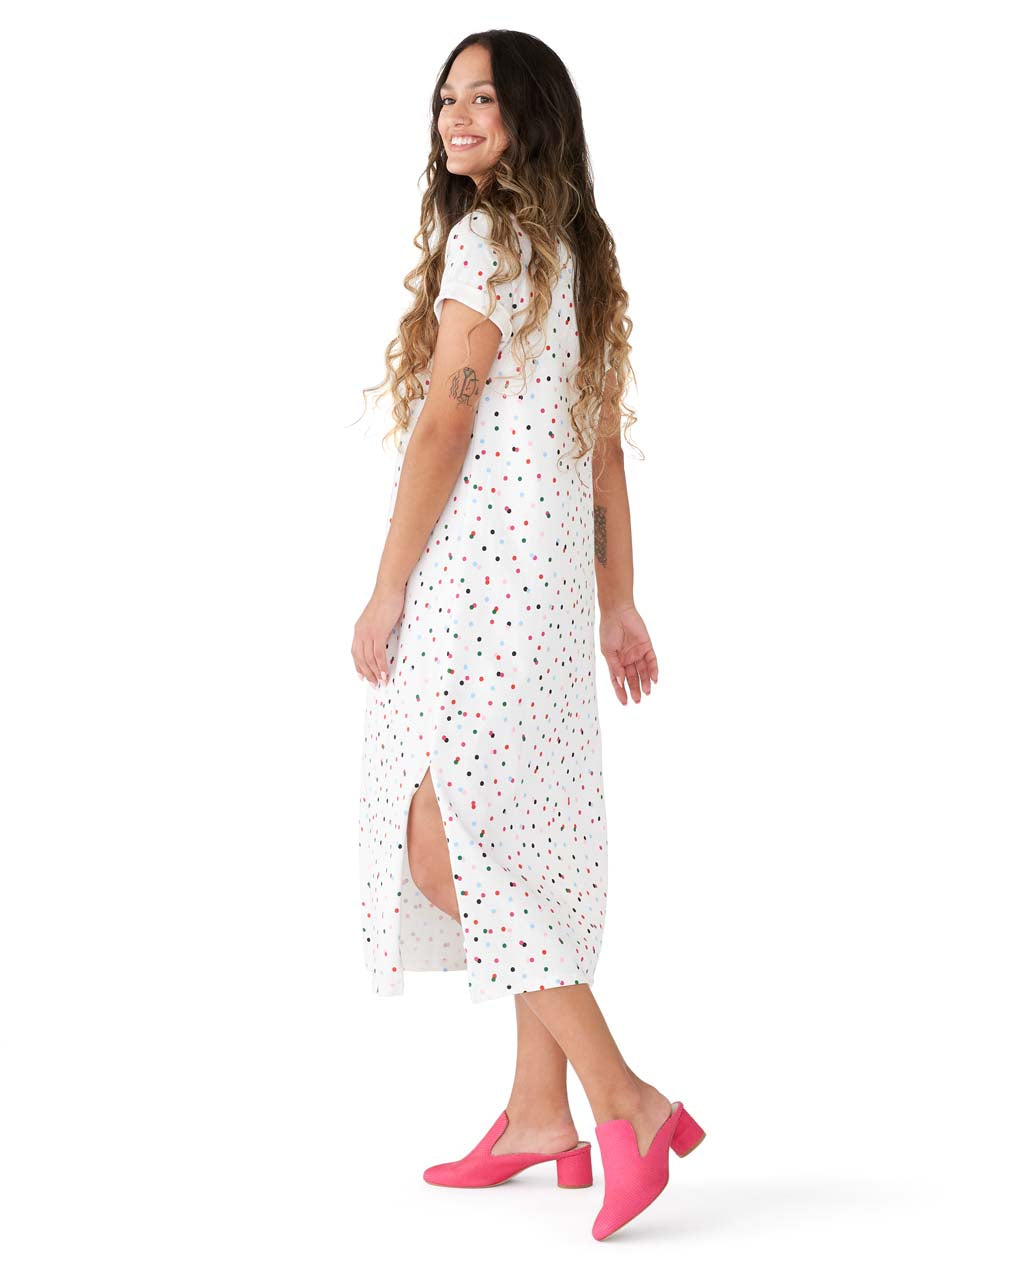 Woman in a white short sleeve midi length tshirt dress with multi-color polka dots.